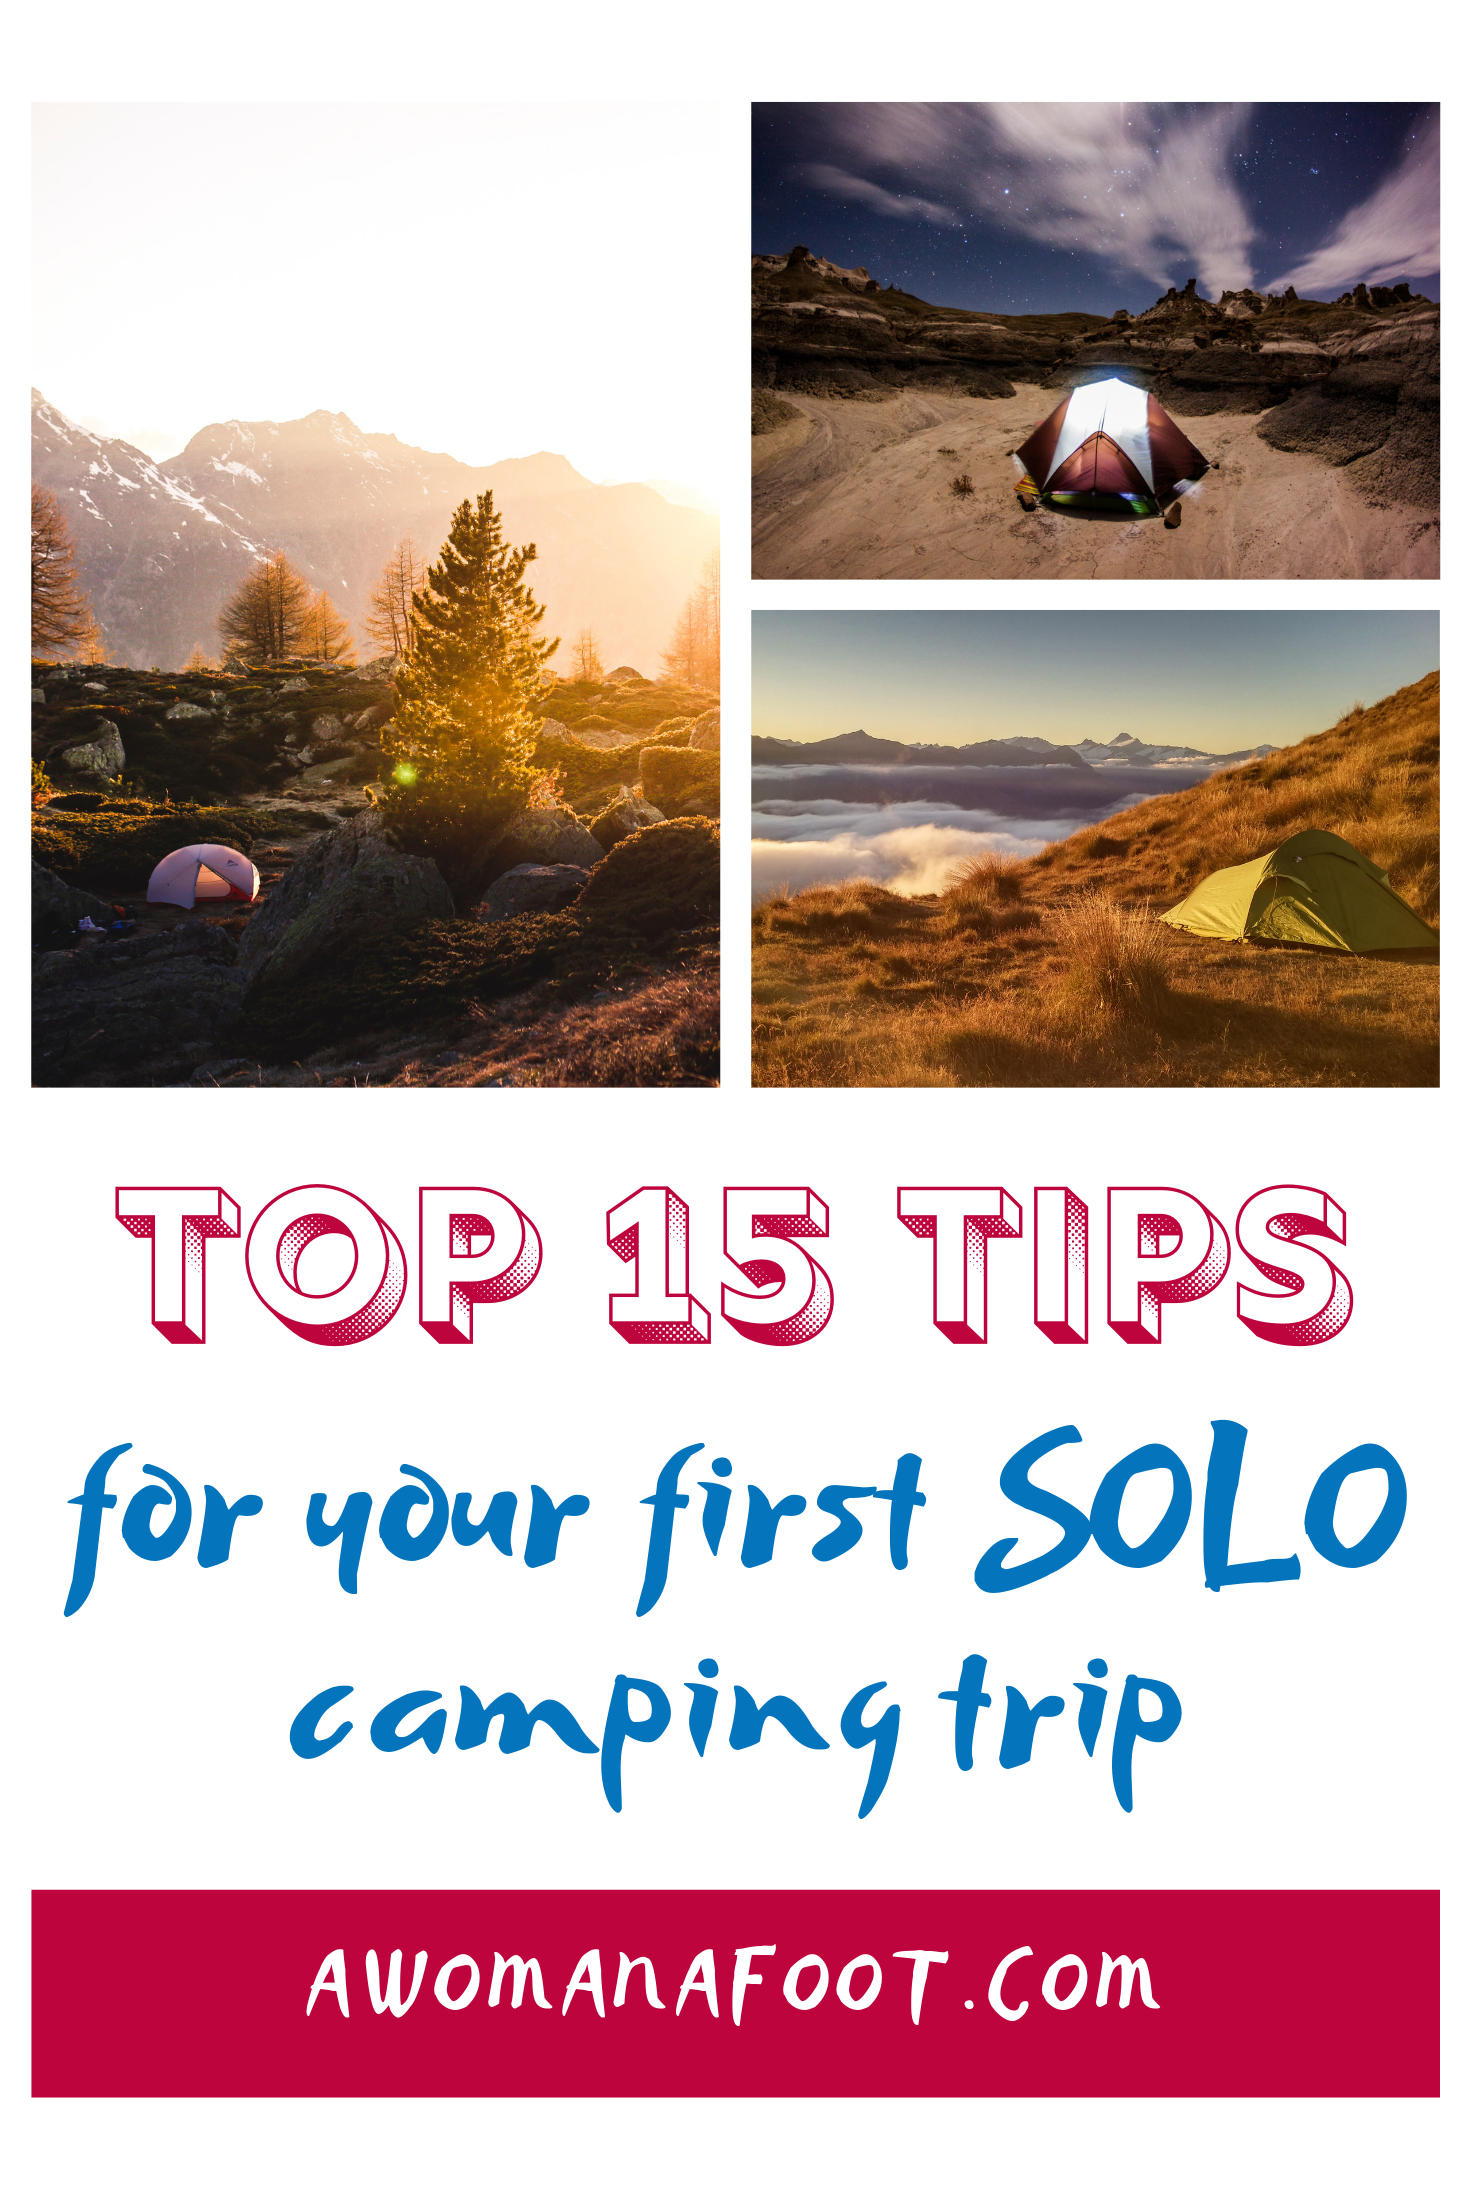 Fall in Love with Camping Solo with these 15 awesome tips! Check how to prepare and what to take for your first solo (wild) camping adventure! Guide to solo camping and hiking for women. awomanafoot.com | female solo hiking | camping tips | trekking | camping for women |#camping #solo #CampingSolo #CampingTips #Camping101 #CampingGear #CampingEssentials